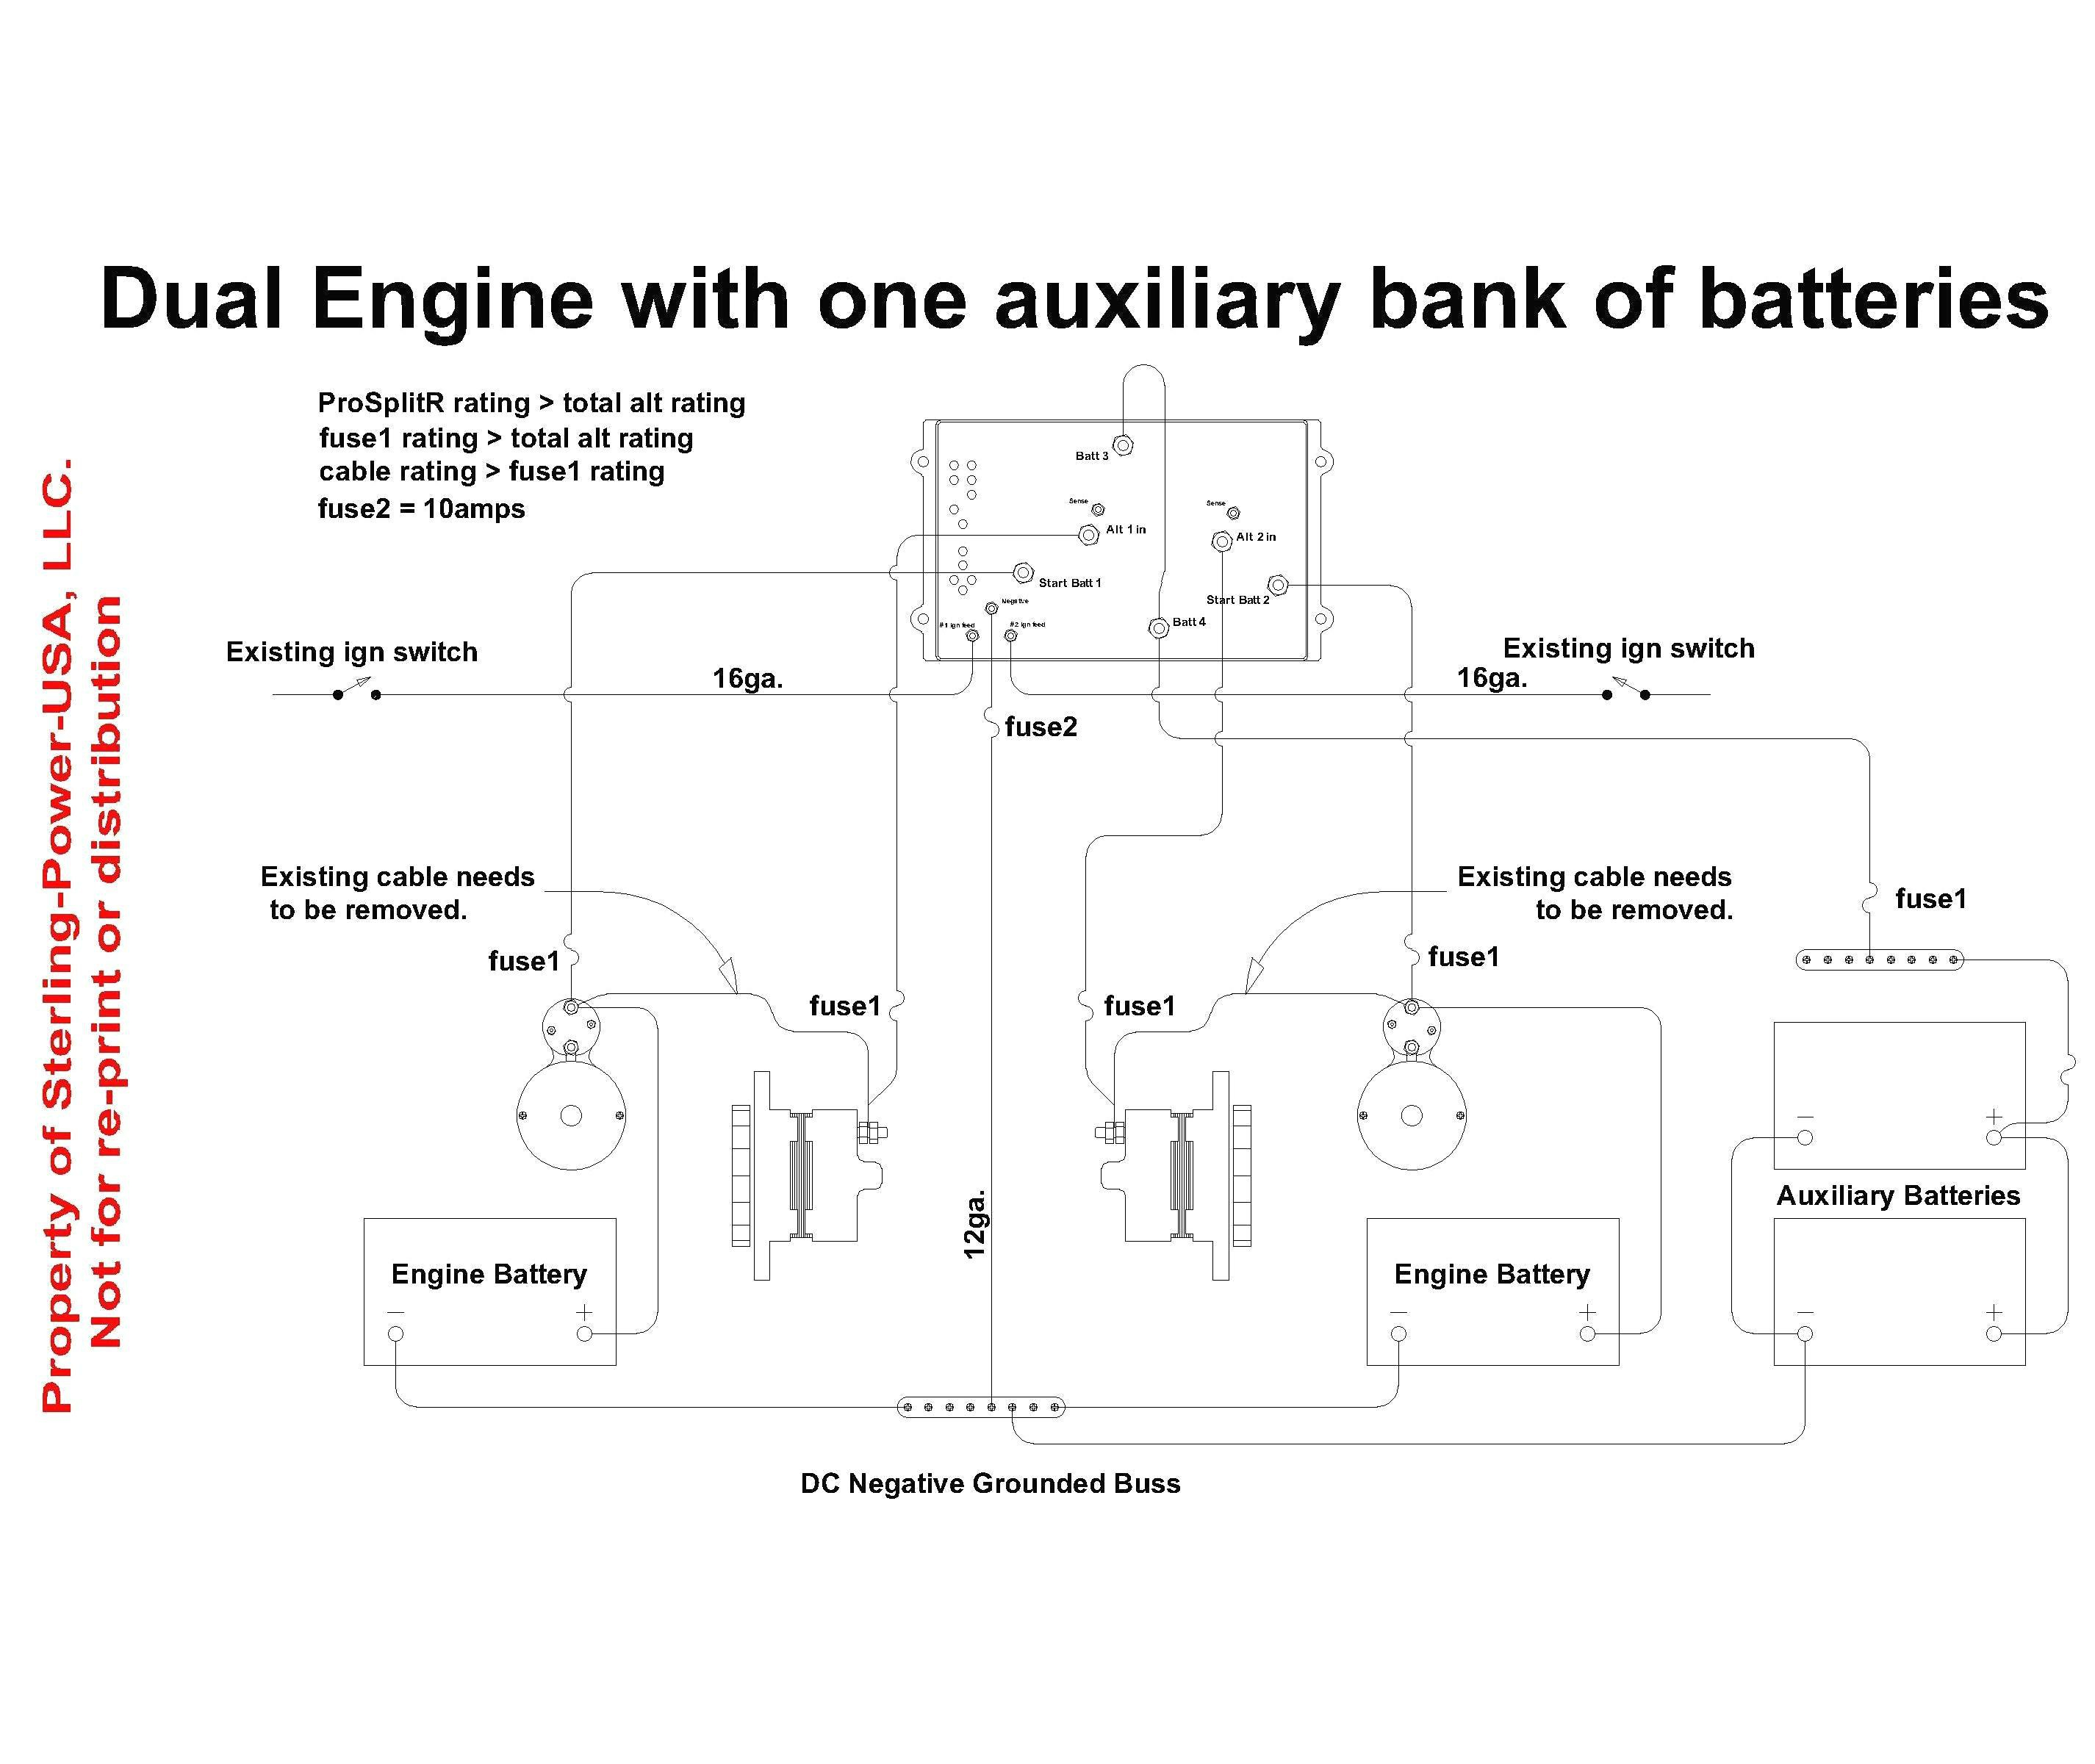 multi battery isolator wiring diagram Download-Battery isolator Wiring Diagram Unique Great Boat Battery isolator Wiring Diagram Boat Battery isolator 4-l